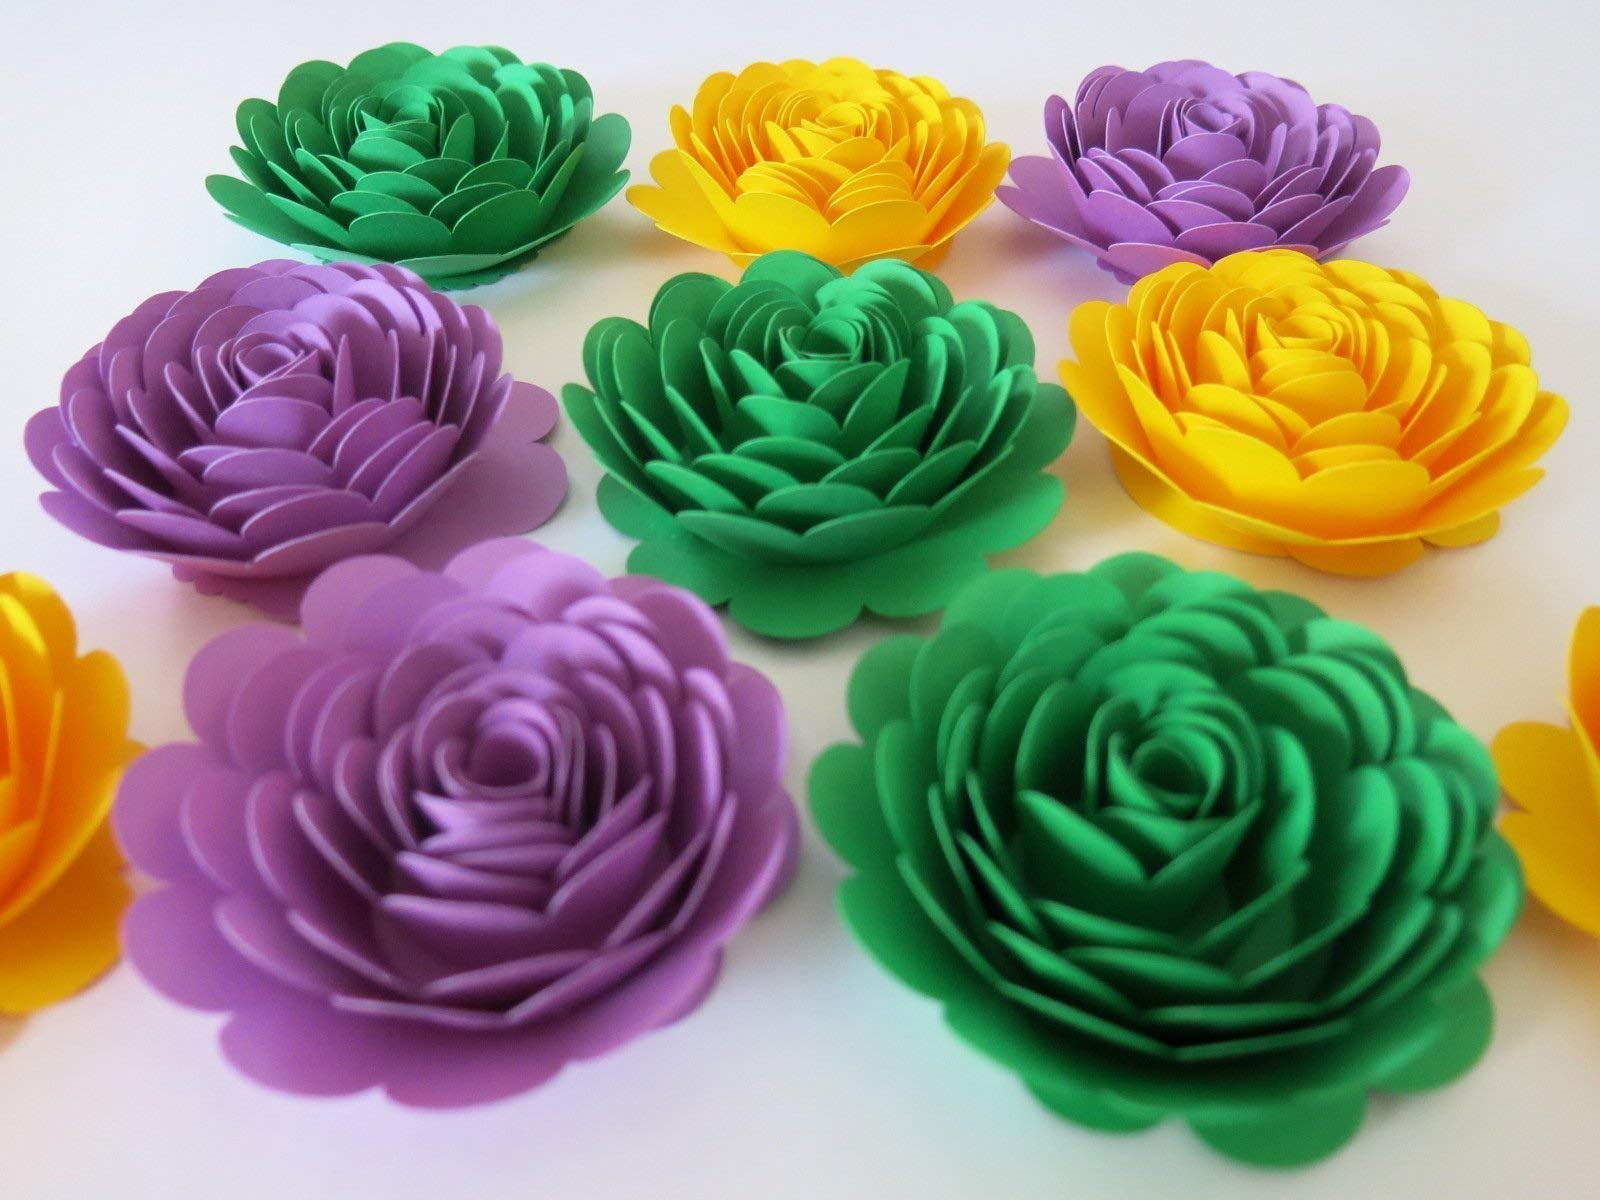 Mardi-Gras-Party-Decorations-Set-of-10-Paper-Flowers-Big-3-Roses-Loose-Floral-Decor-Purple-Green-Yellow-Color-New-Orleans-Theme-Event